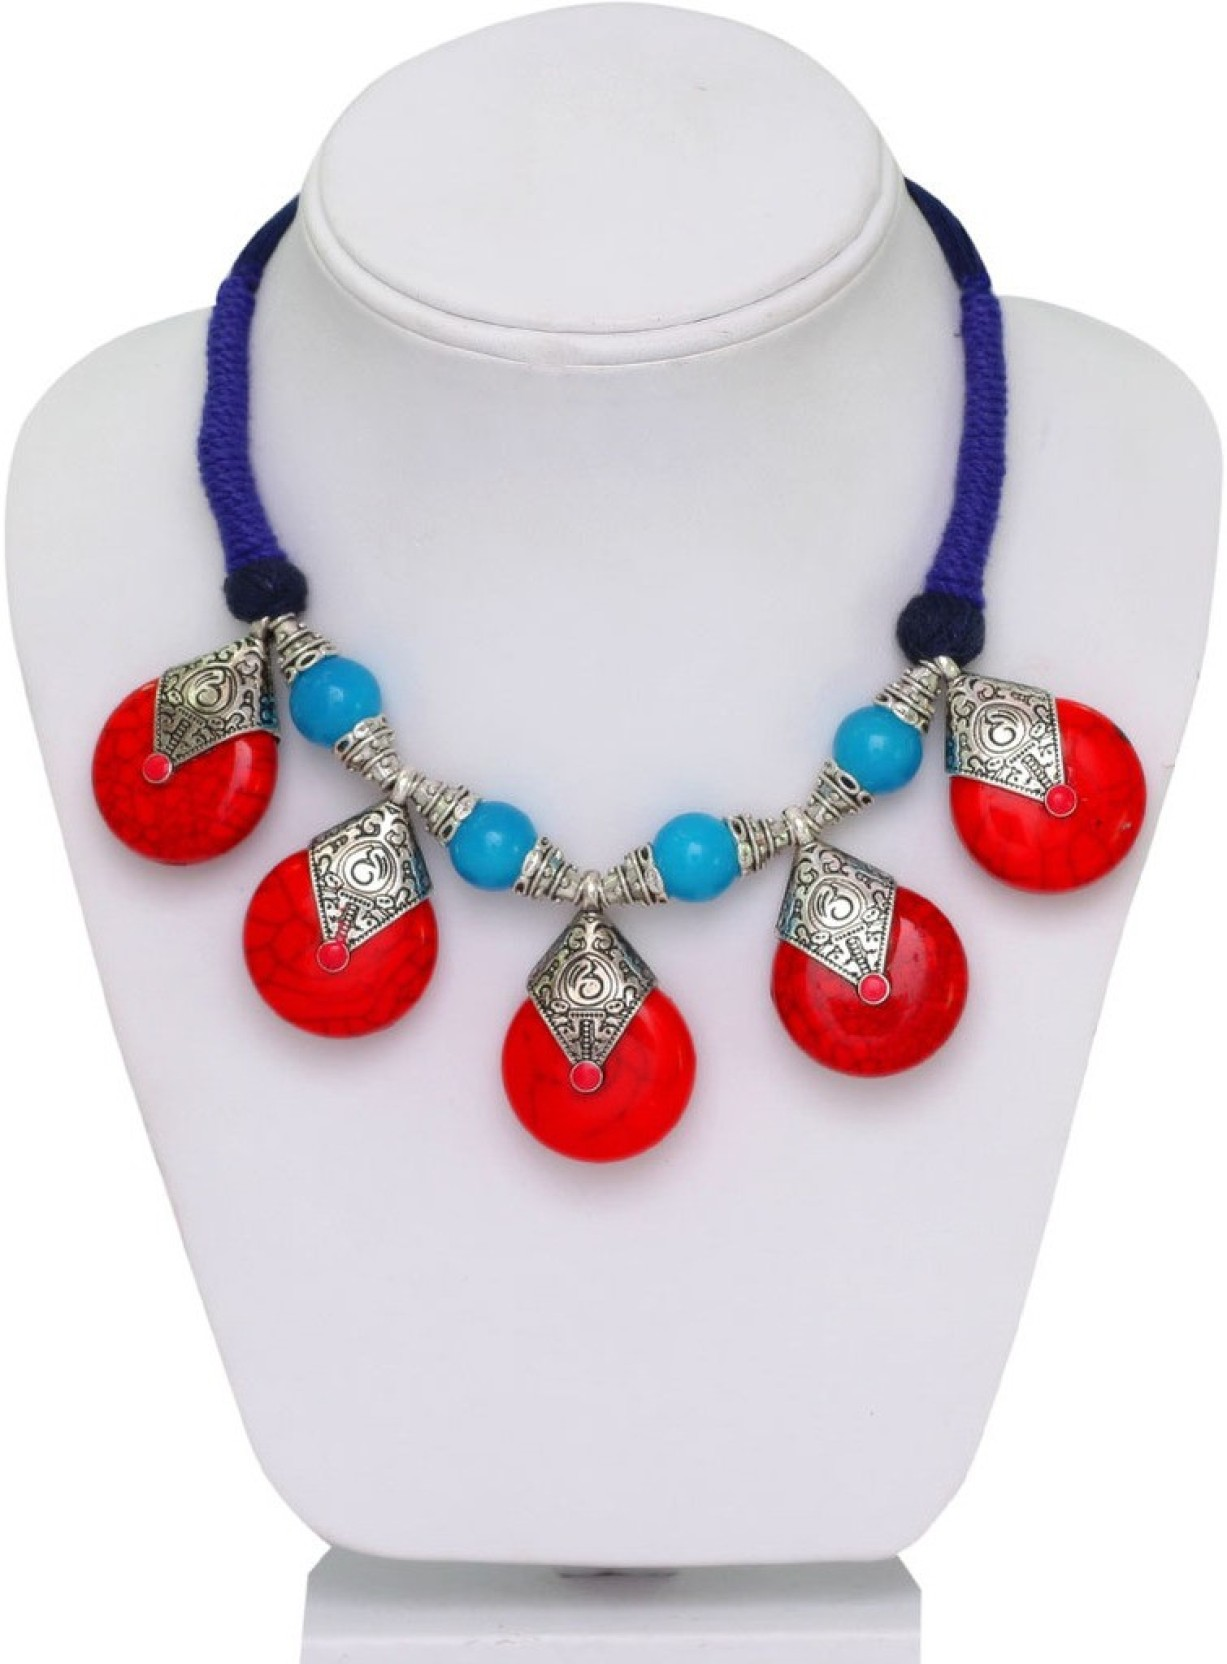 7d5237330a420 Jaipur Mart Ethnic Look Red & Firoza Stones with Oxidised Silver ...